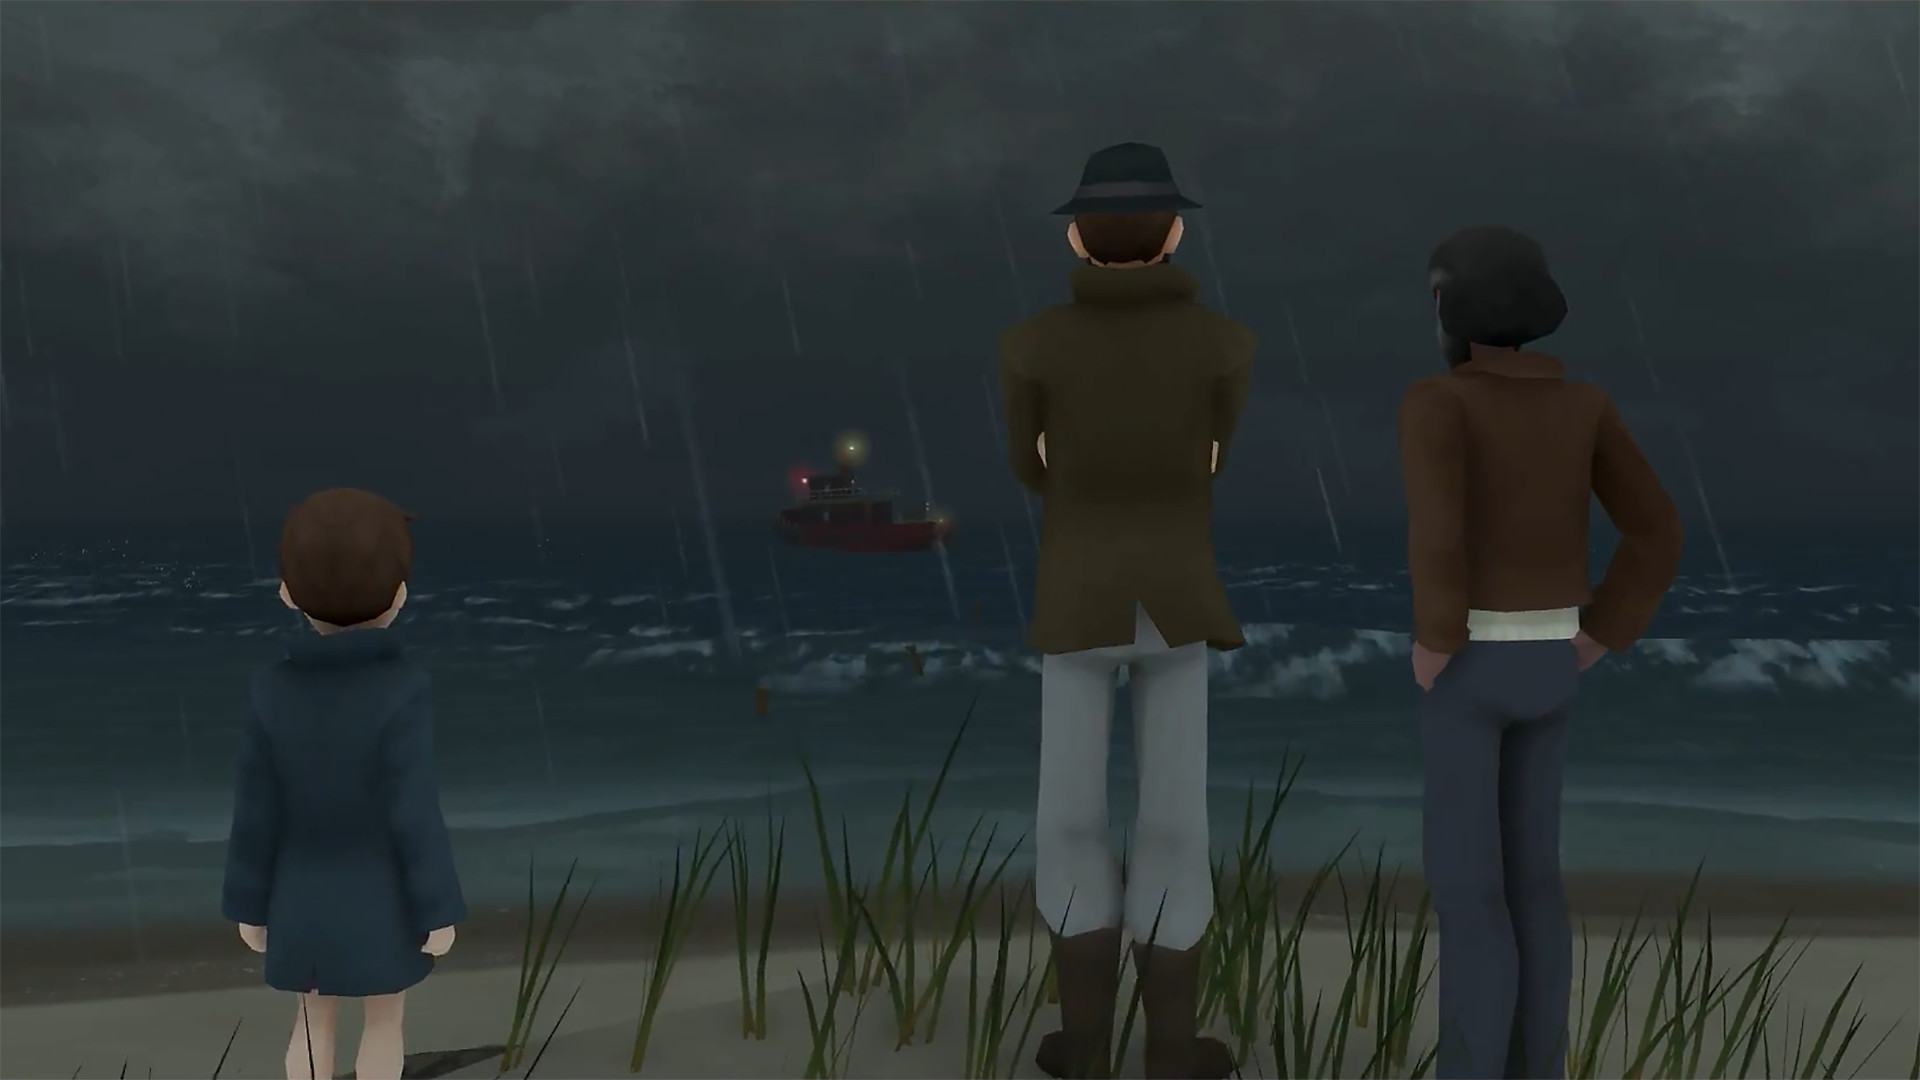 Storm Boy and two other characters look out onto a dark sea